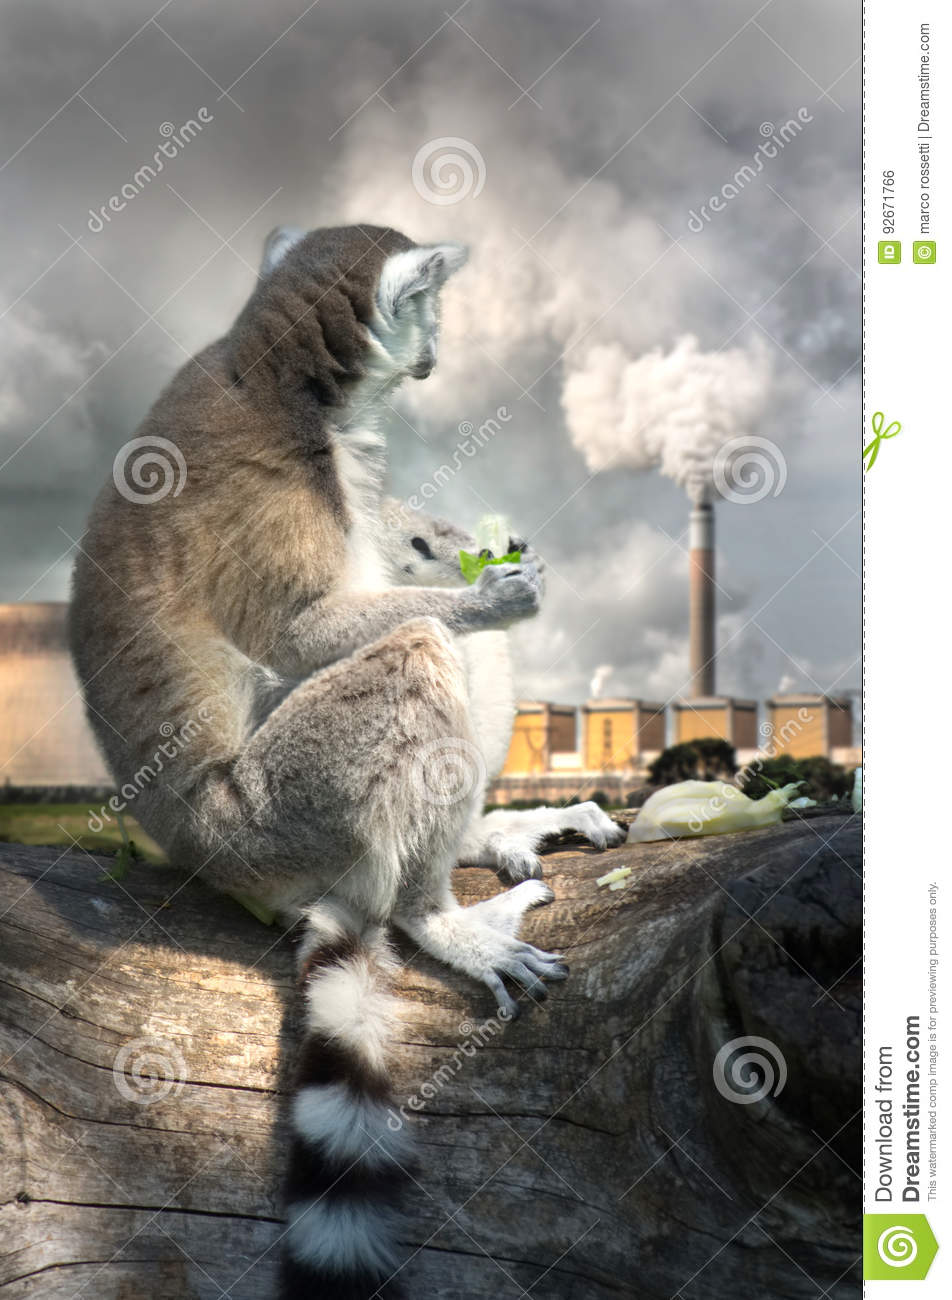 Lemur eating salad, looking sadly at the chimney of a thermal power plant